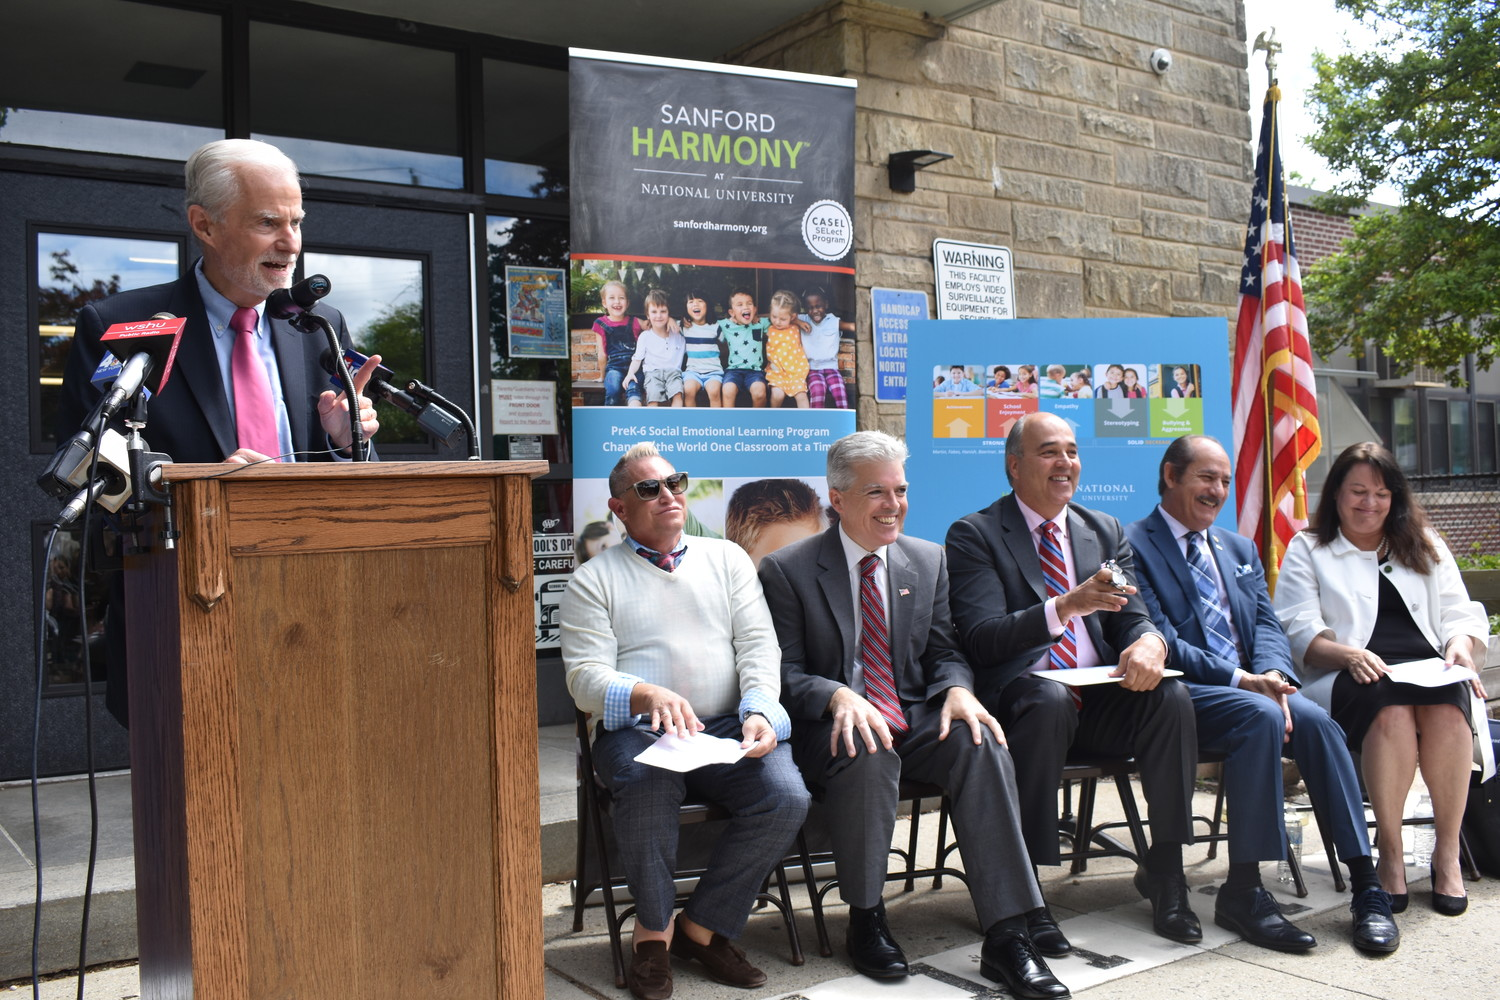 Schools Superintendent Dr. William Johnson lauded Sanford Harmony. Seated, from left, at the donation announcement were Covert Elementary School Principal Darren Raymar; Suffolk County Executive Steven Bellone; Dr. Michael R. Cunningham, chancellor of the National University System; Guillermo Linares, acting president of the Higher Education Services Corp.; and Kimberly Cline, president of Long Island University.